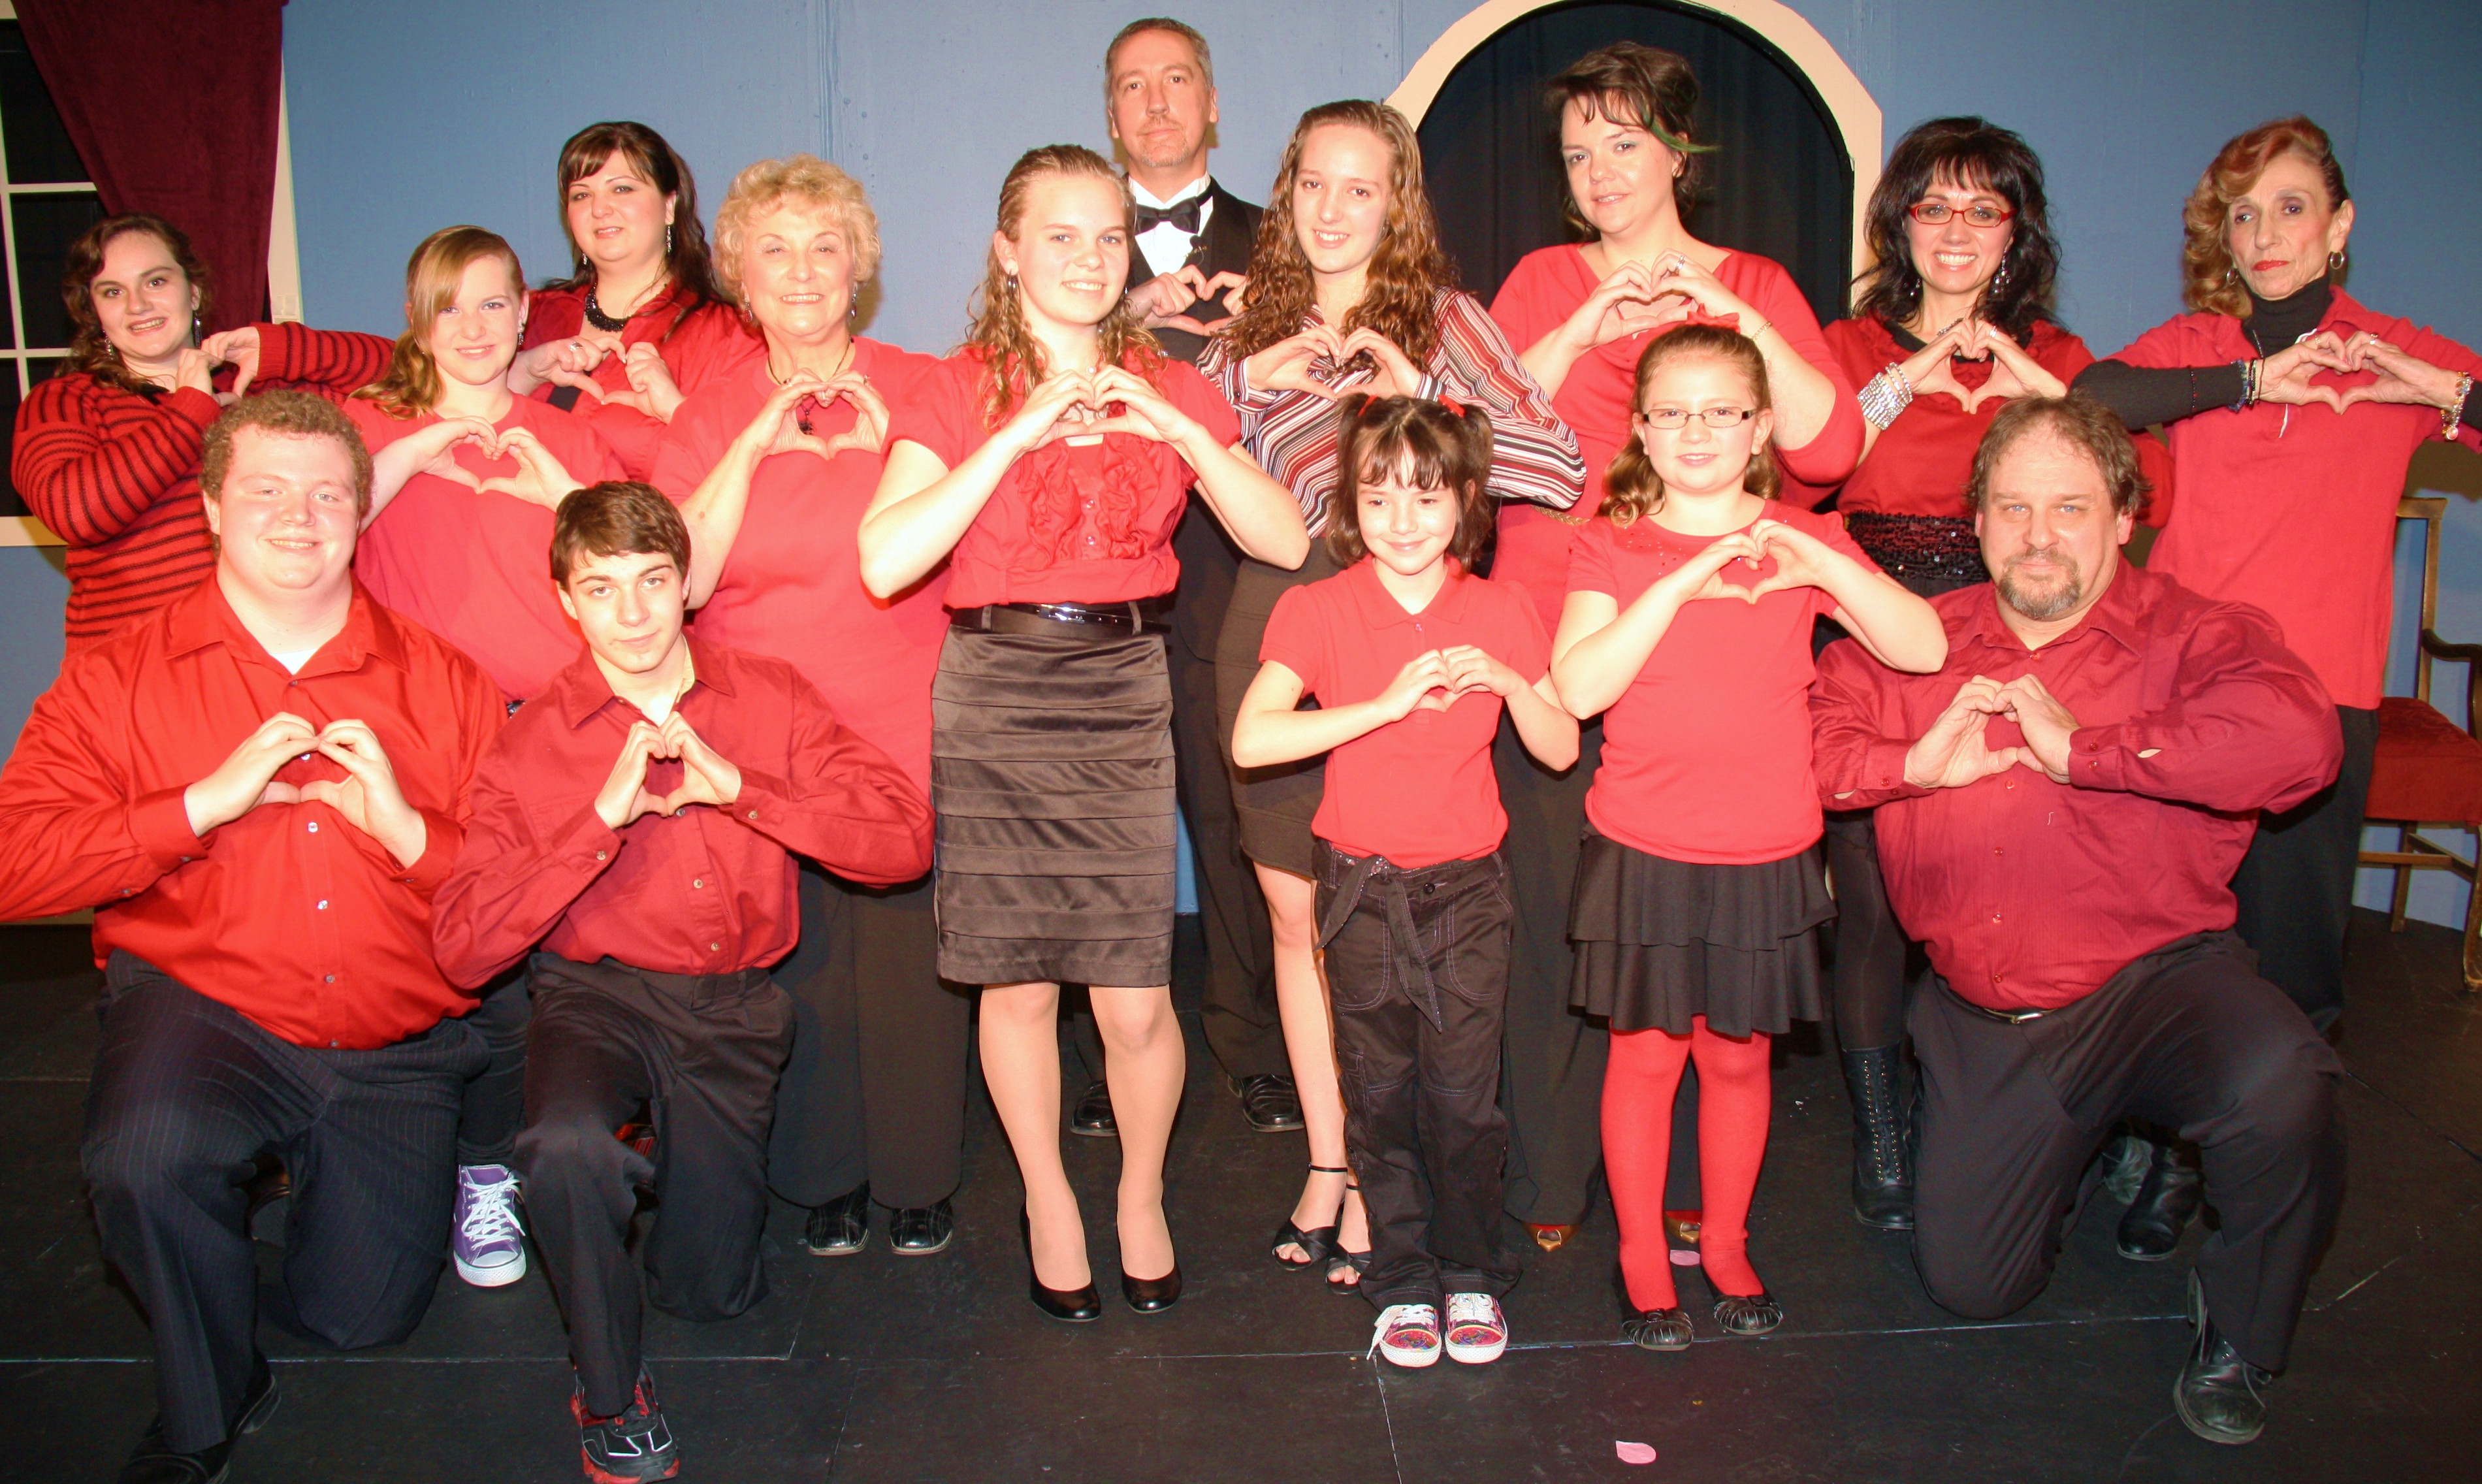 FIVE YEARS AGO: Valentine's Cabaret Show held at Strawberry Playhouse